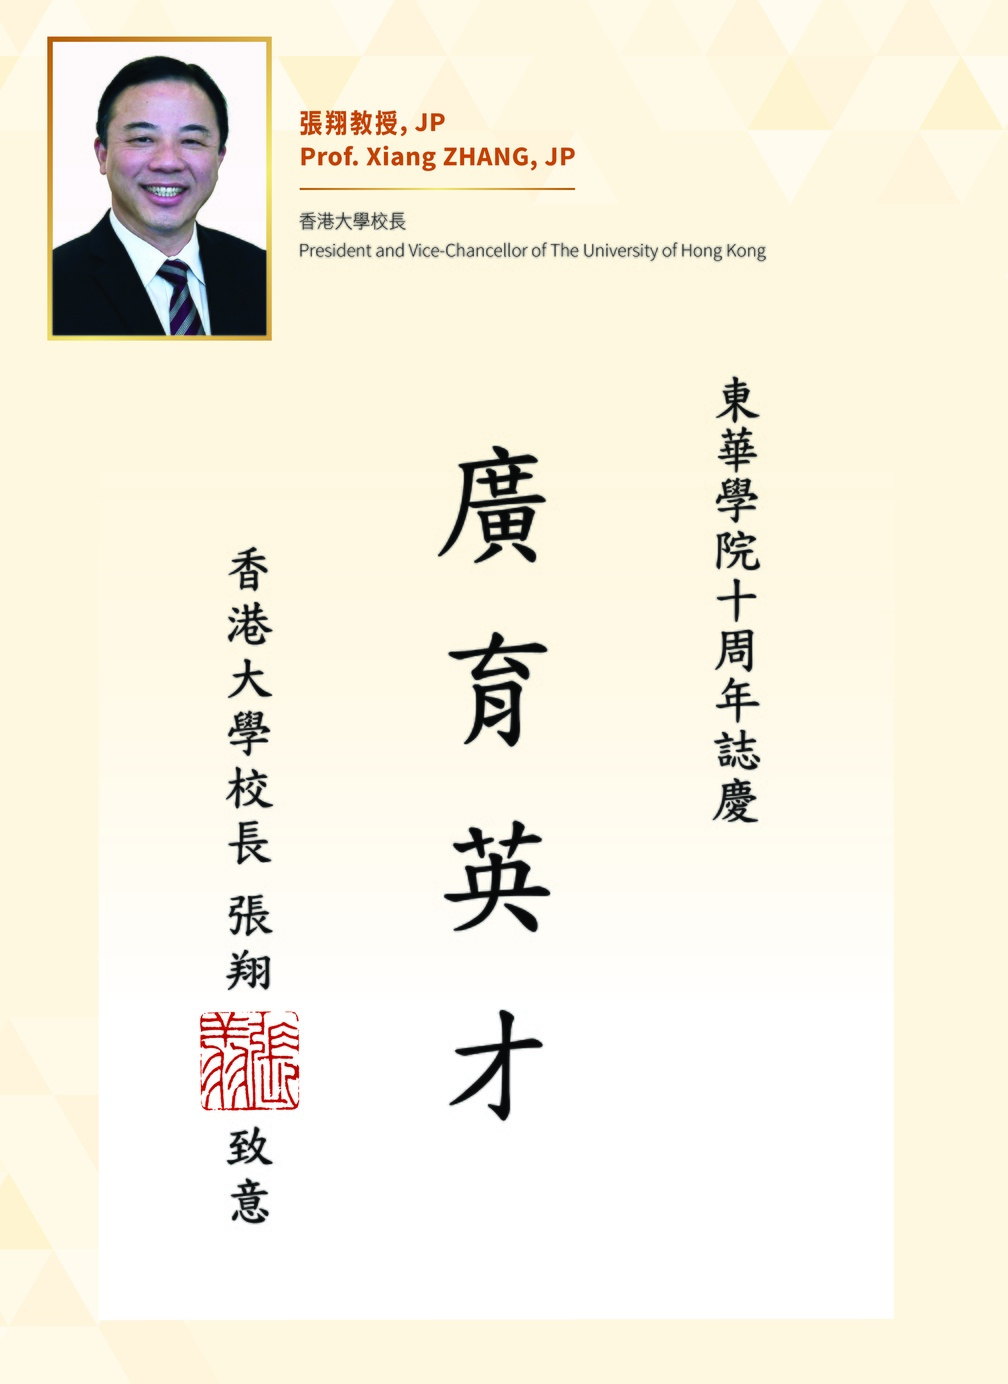 President and Vice-Chancellor of The University of Hong Kong